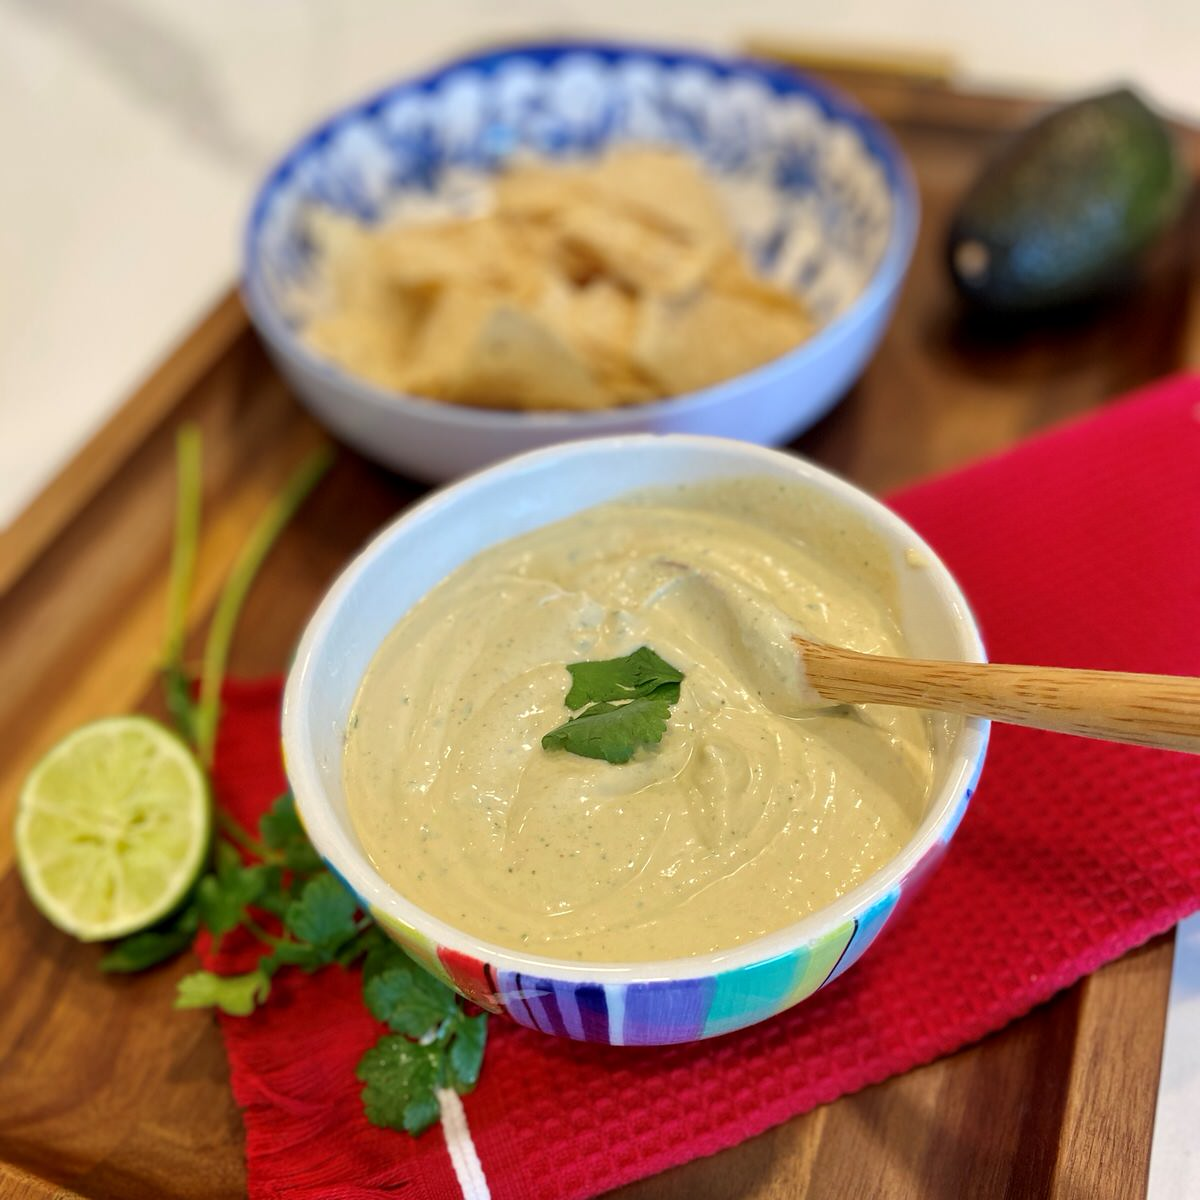 The Best Creamy Avocado Dipping Sauce Recipe | Easy Weeknight Dinner Recipes | A Dash of Casual Blog | Home Decor Boutique | Boerne Texas | San Antonio | Texas Hill Country